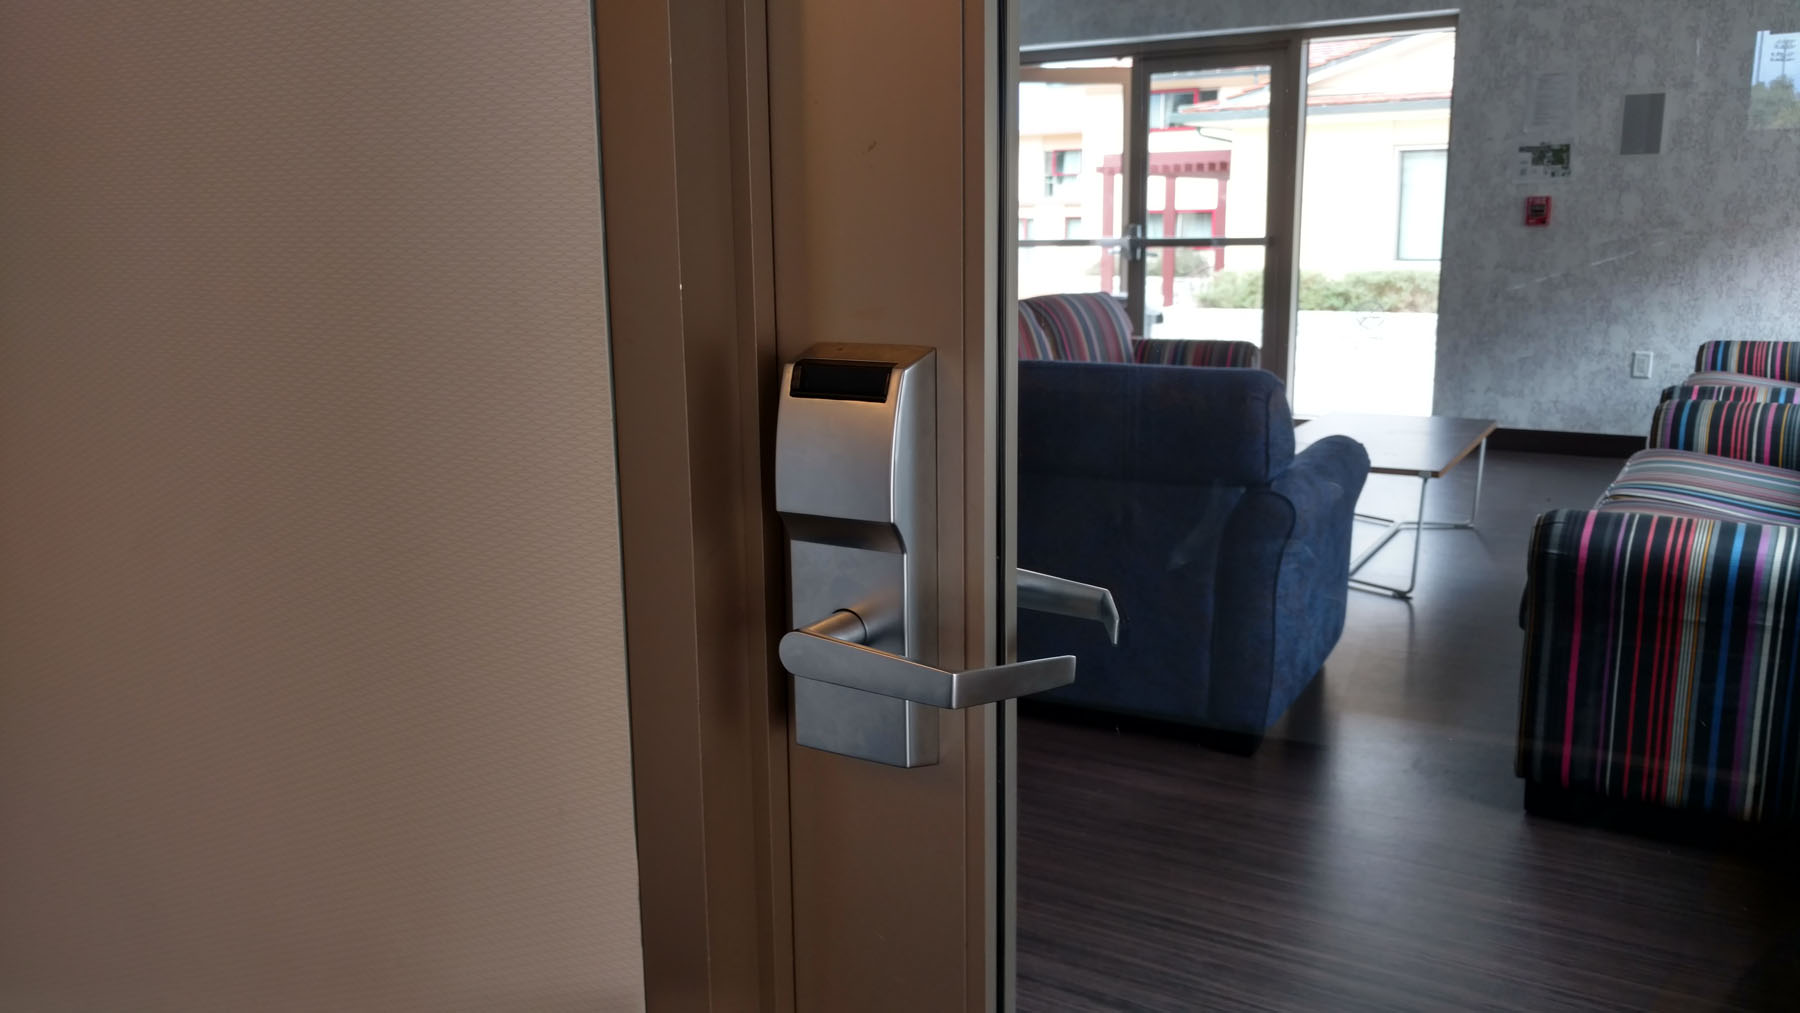 Electronic door lock to common room area